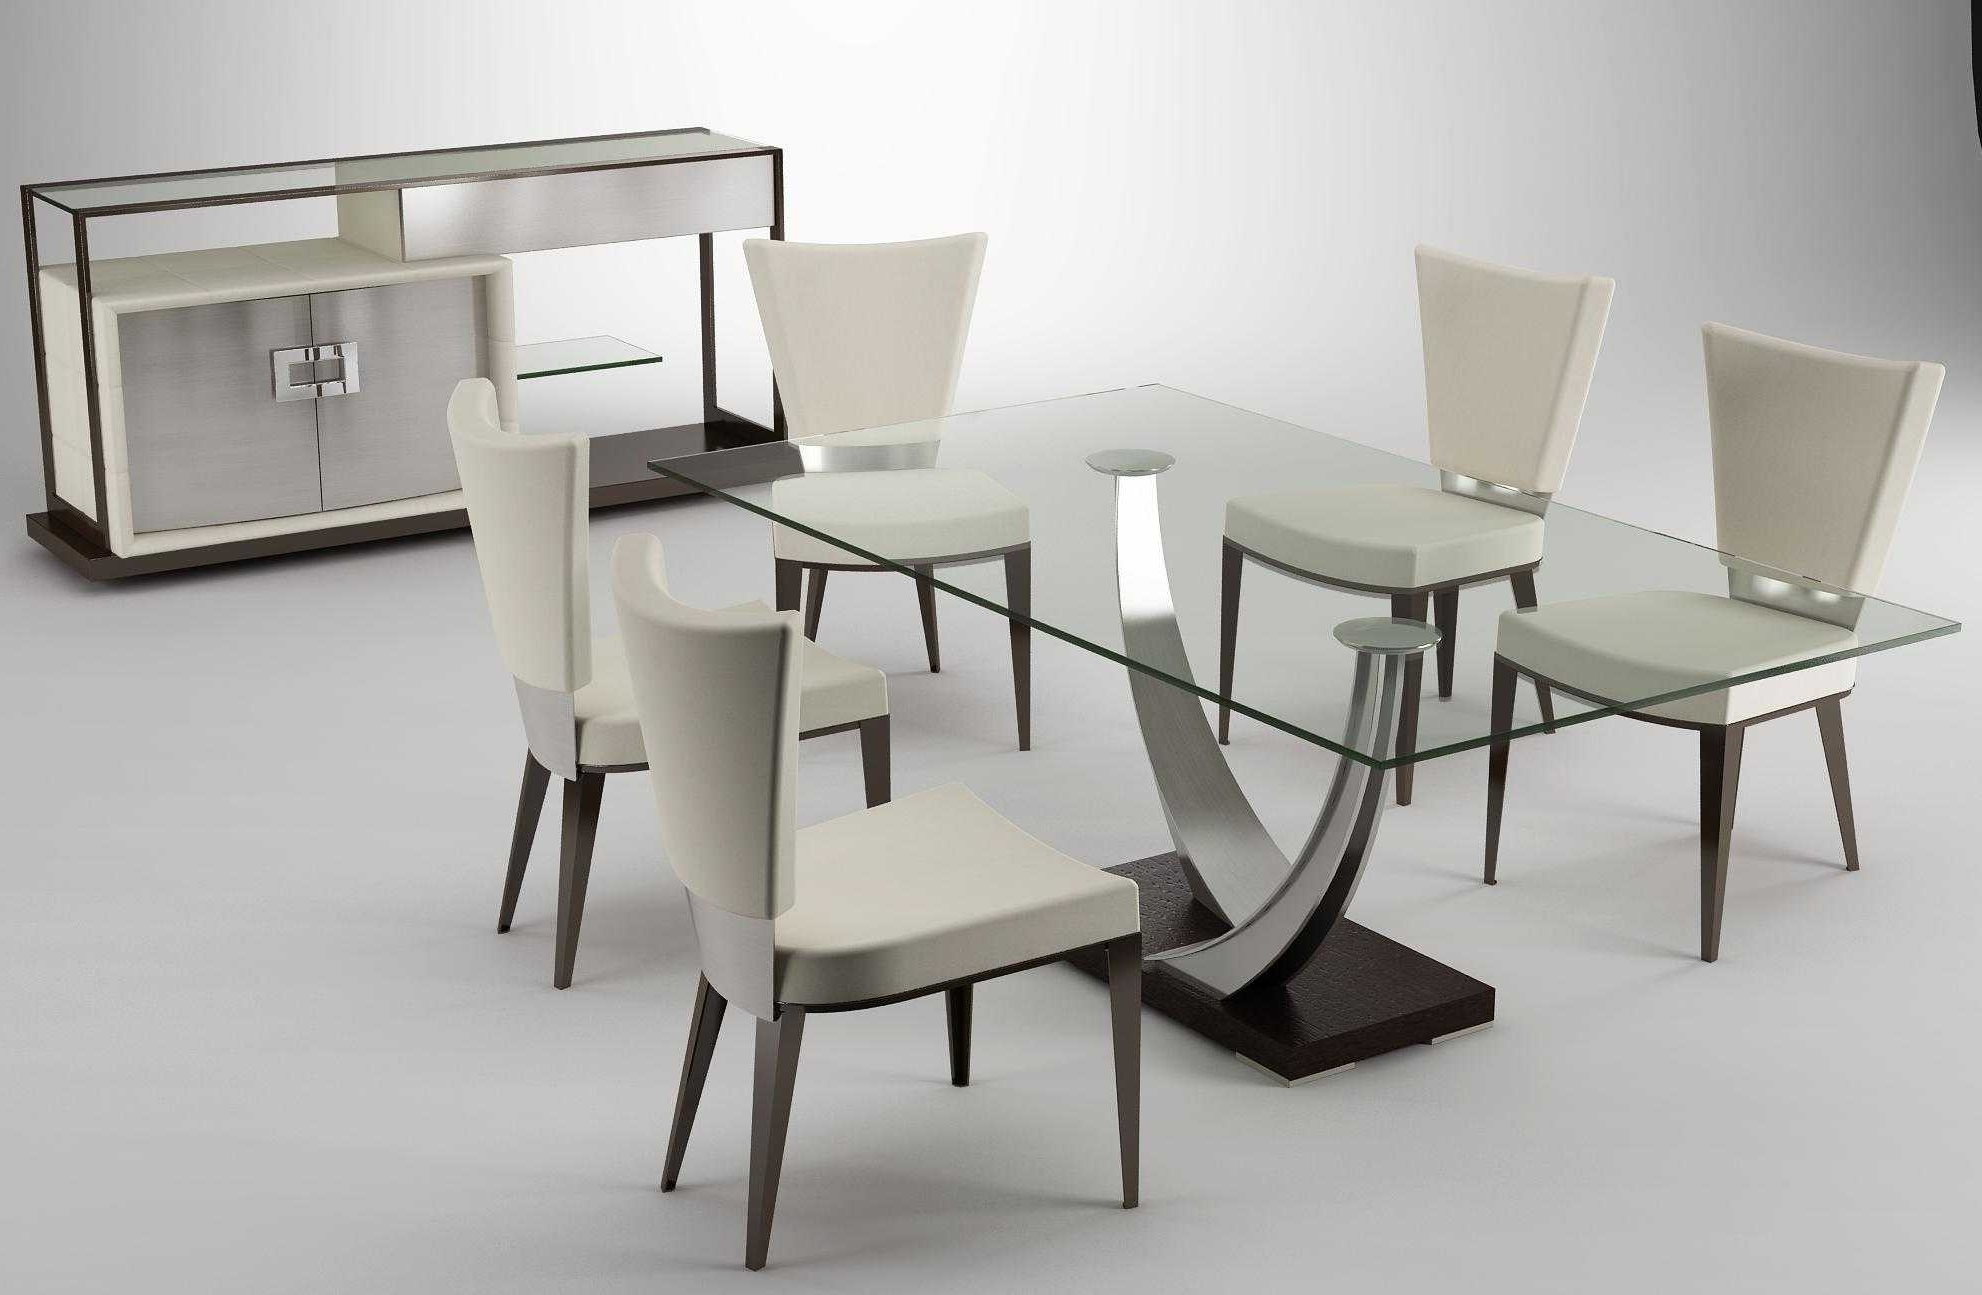 Modern Dining Table And Chairs Throughout Most Current Dining Room Contemporary Nook Dining Set Modern Glass Dining Table (View 17 of 25)